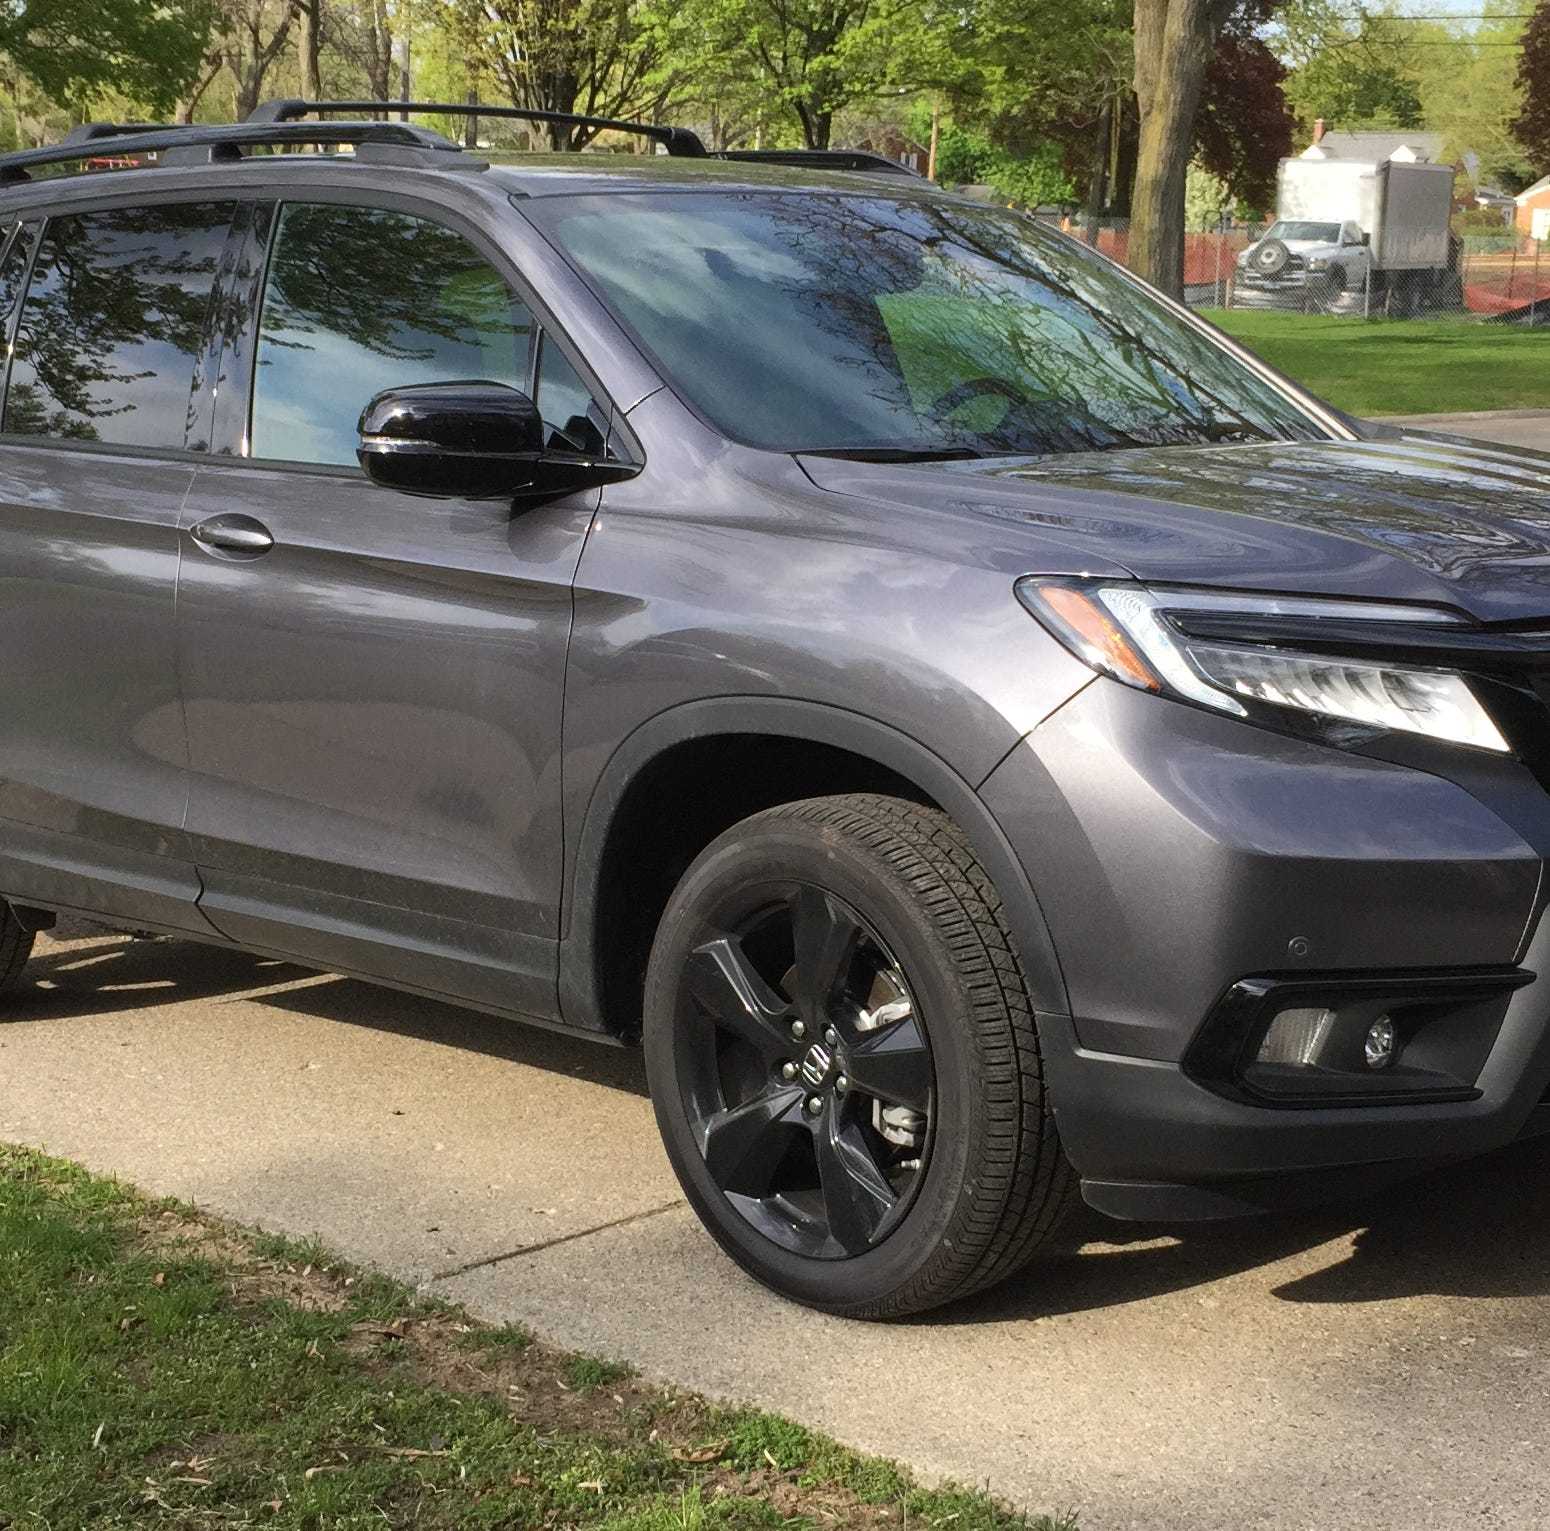 2019 Honda Passport SUV brings the steak, not much sizzle